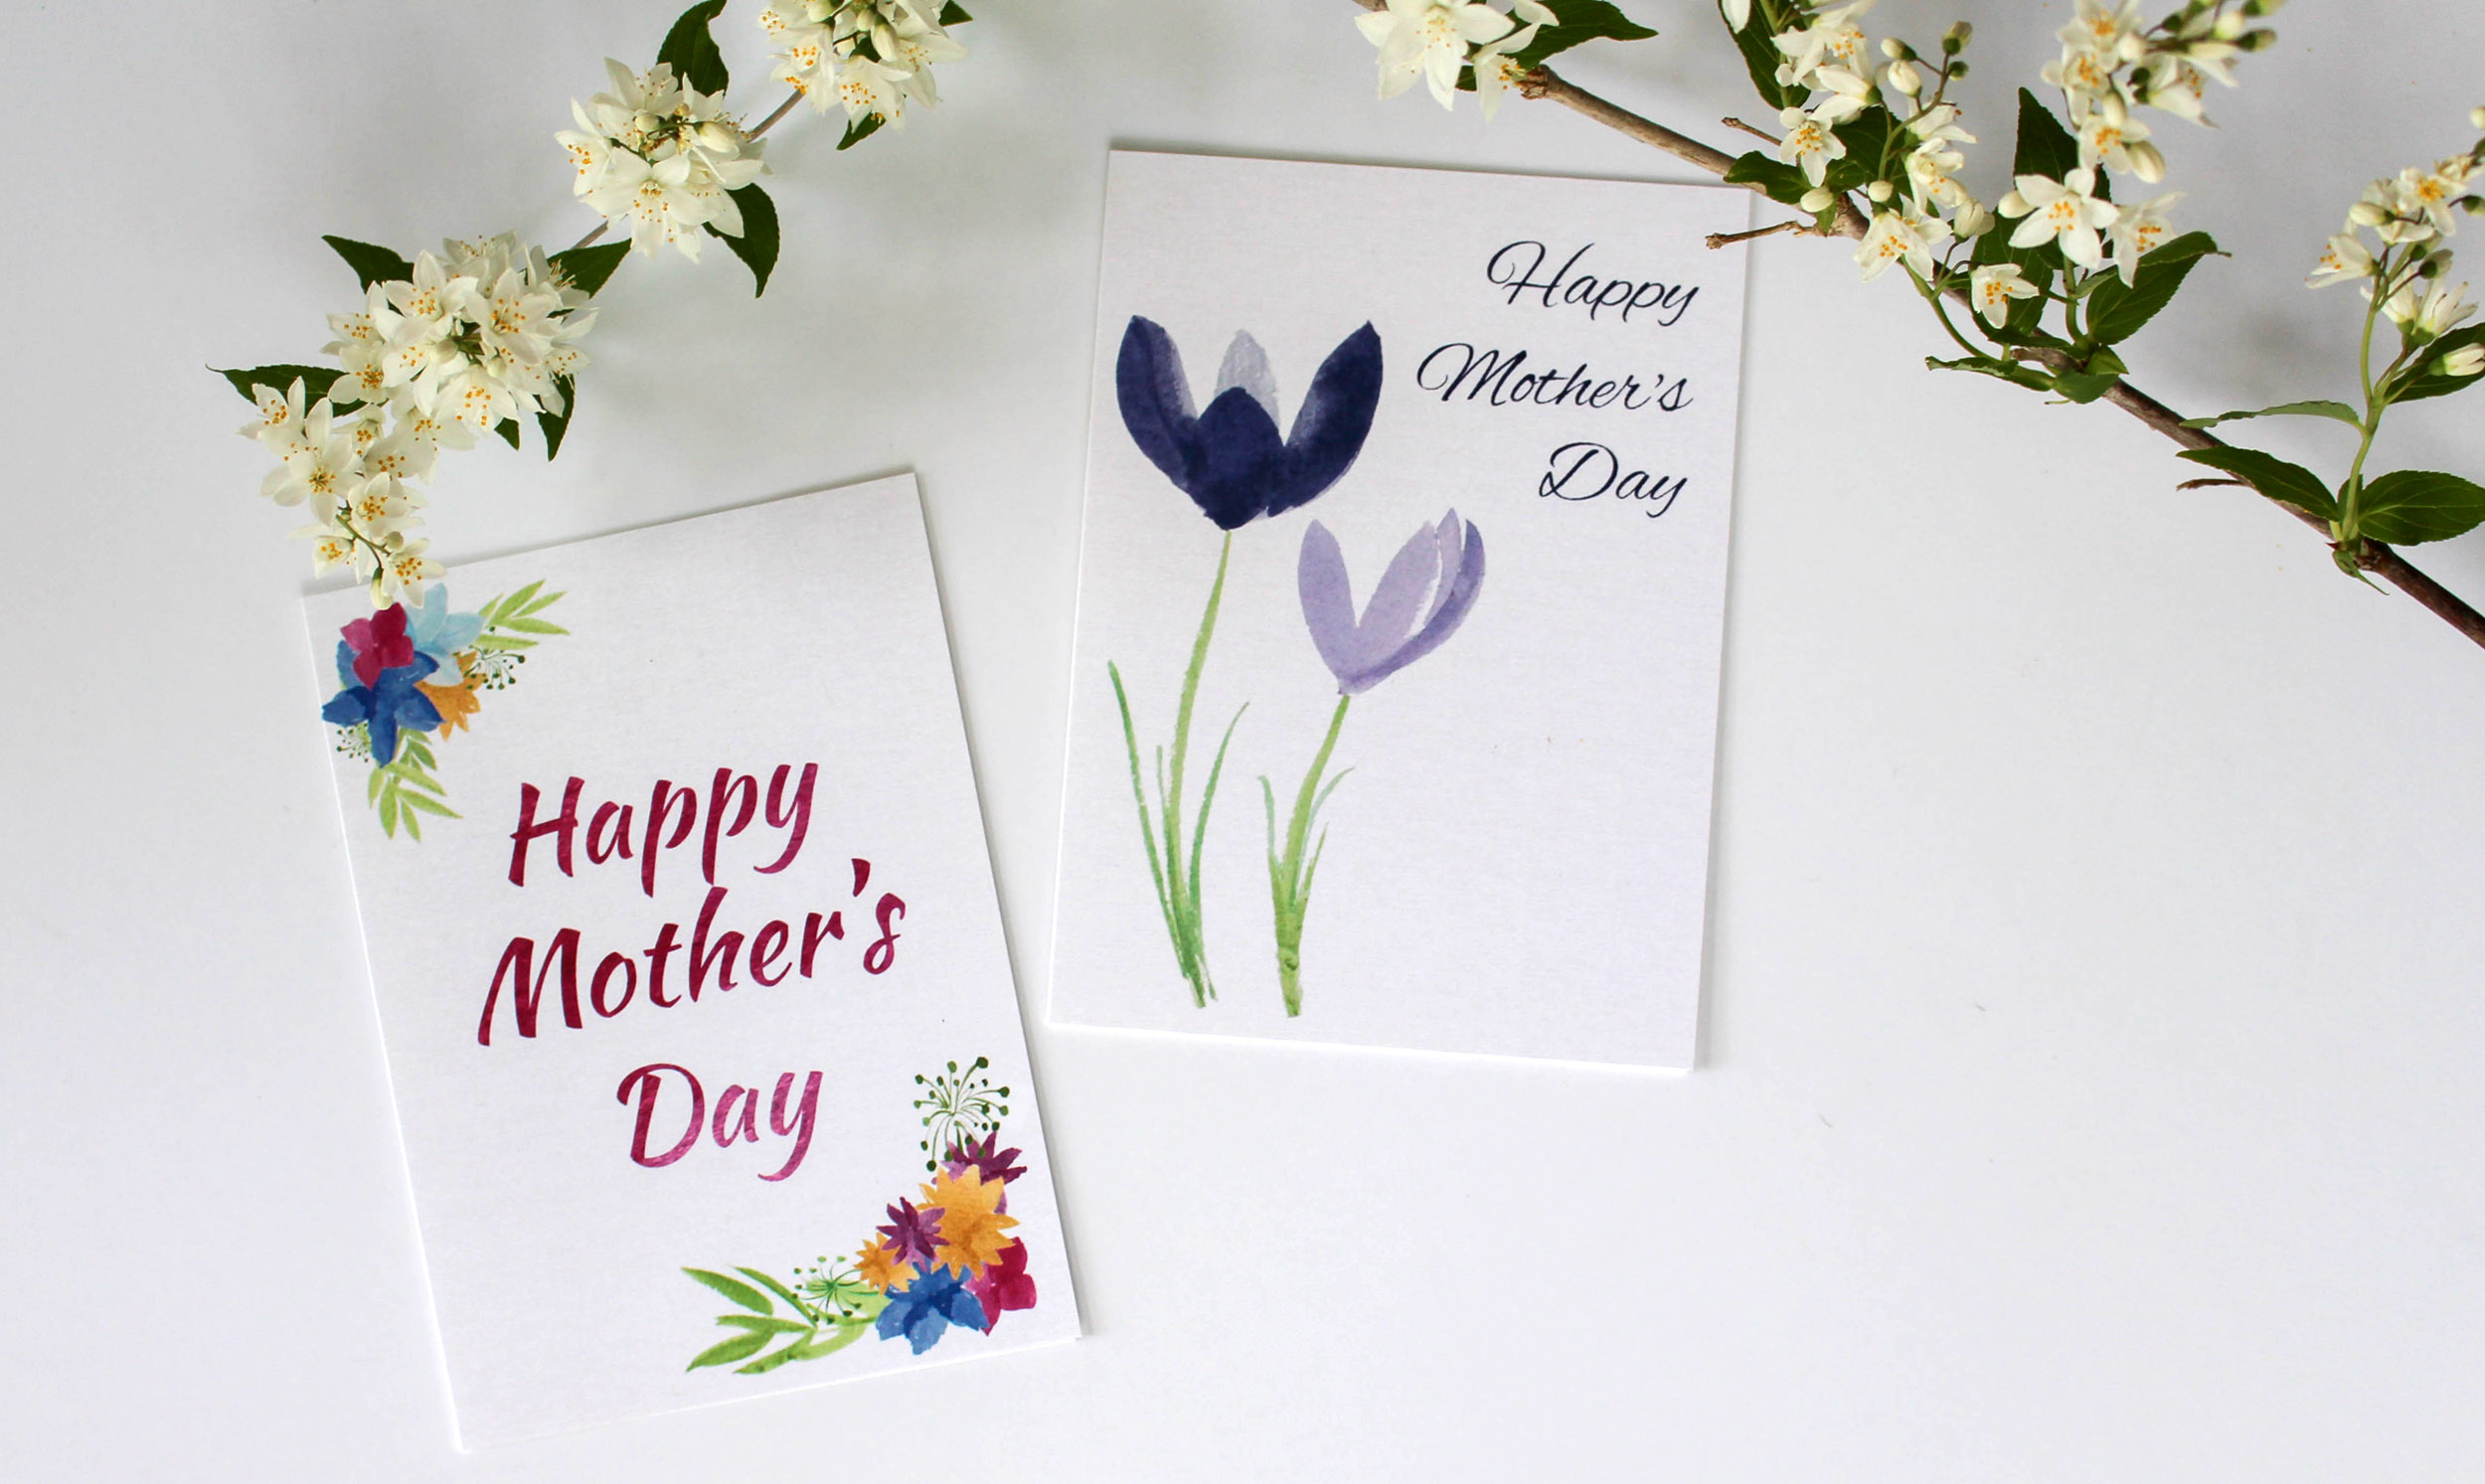 Cafe Notes + Company Mother's Day Cards and Flower Branch.jpg